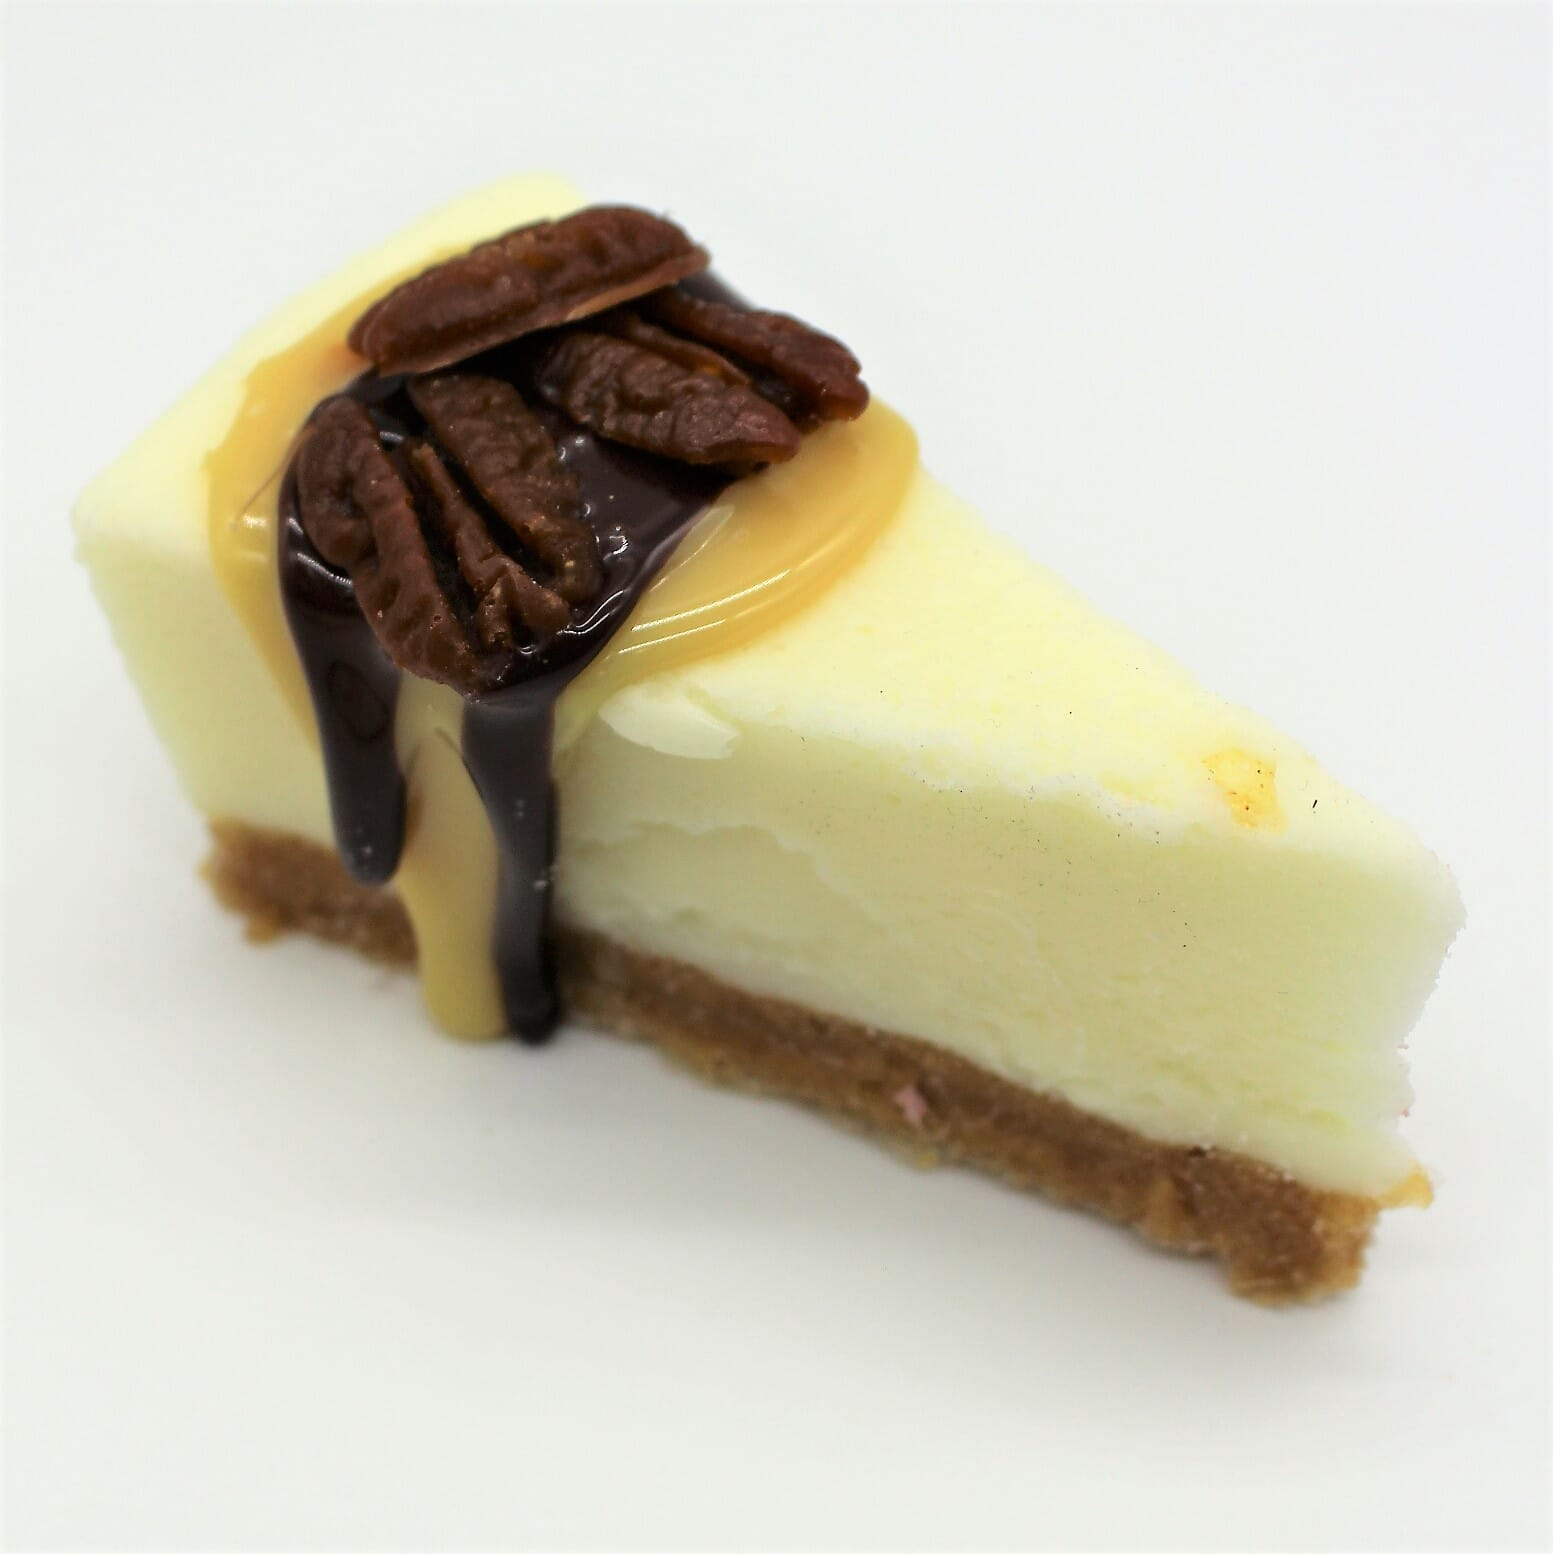 Fake Slice of Turtle Cheesecake